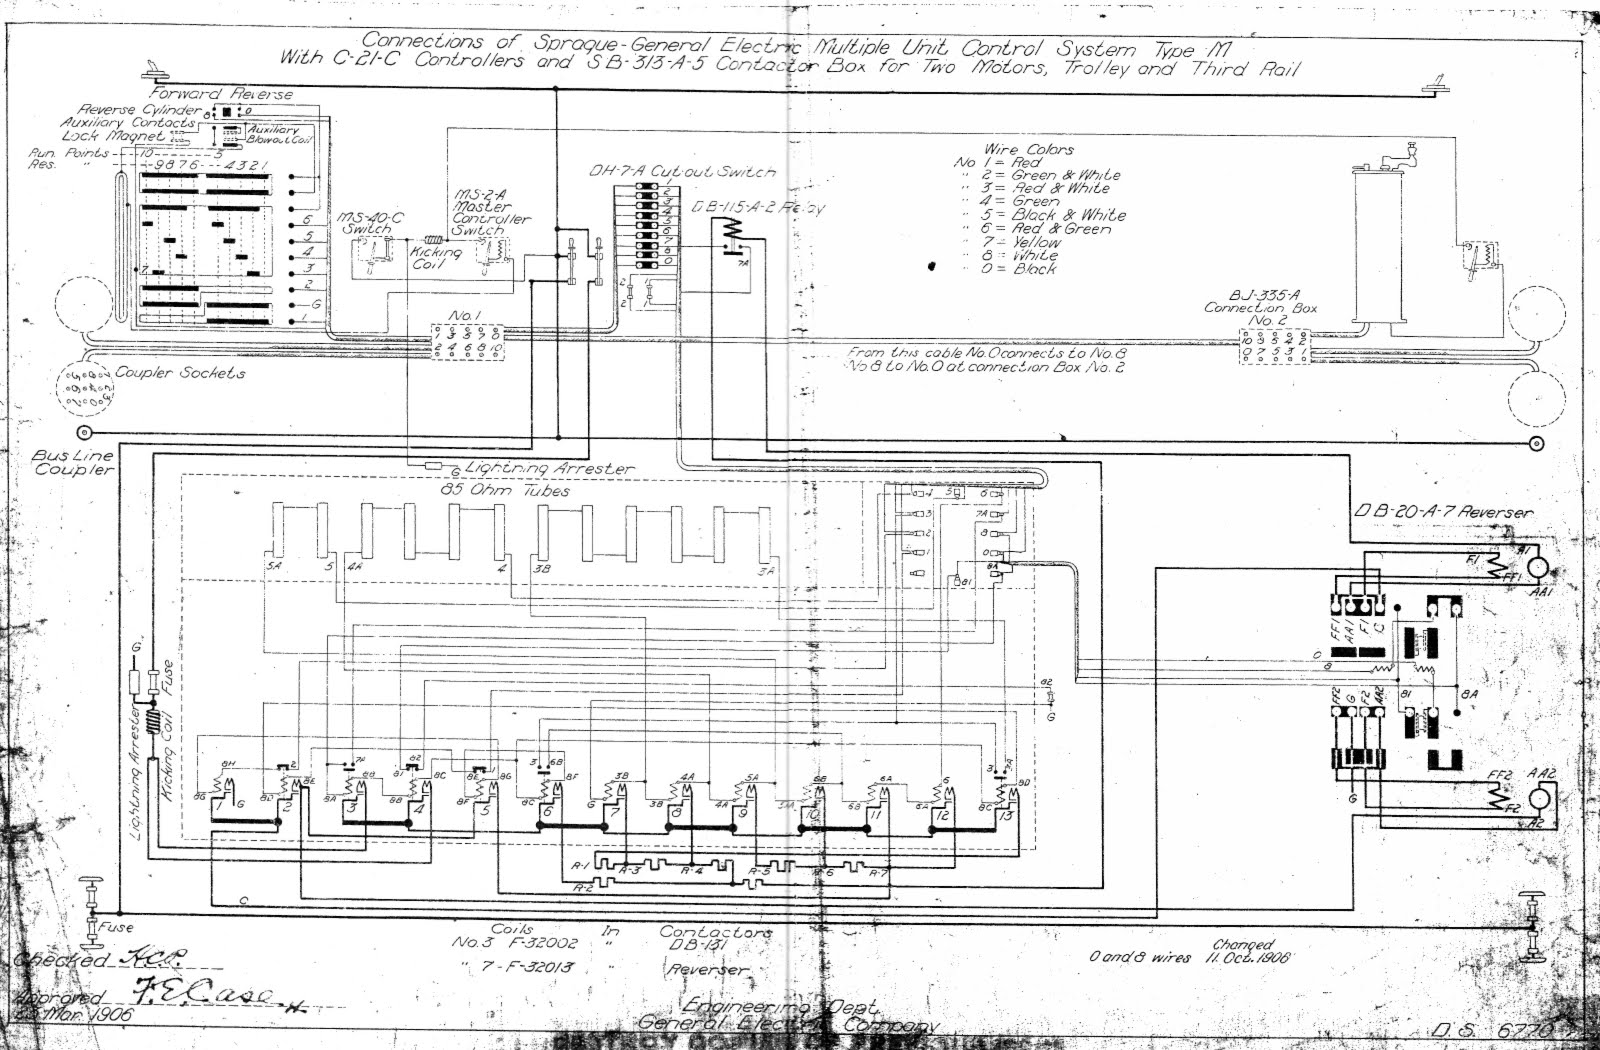 small resolution of wiring diagram in addition 2006 isuzu npr glow plug wiring diagram 2000 isuzu npr abs relay 2006 isuzu npr glow plug wiring diagram